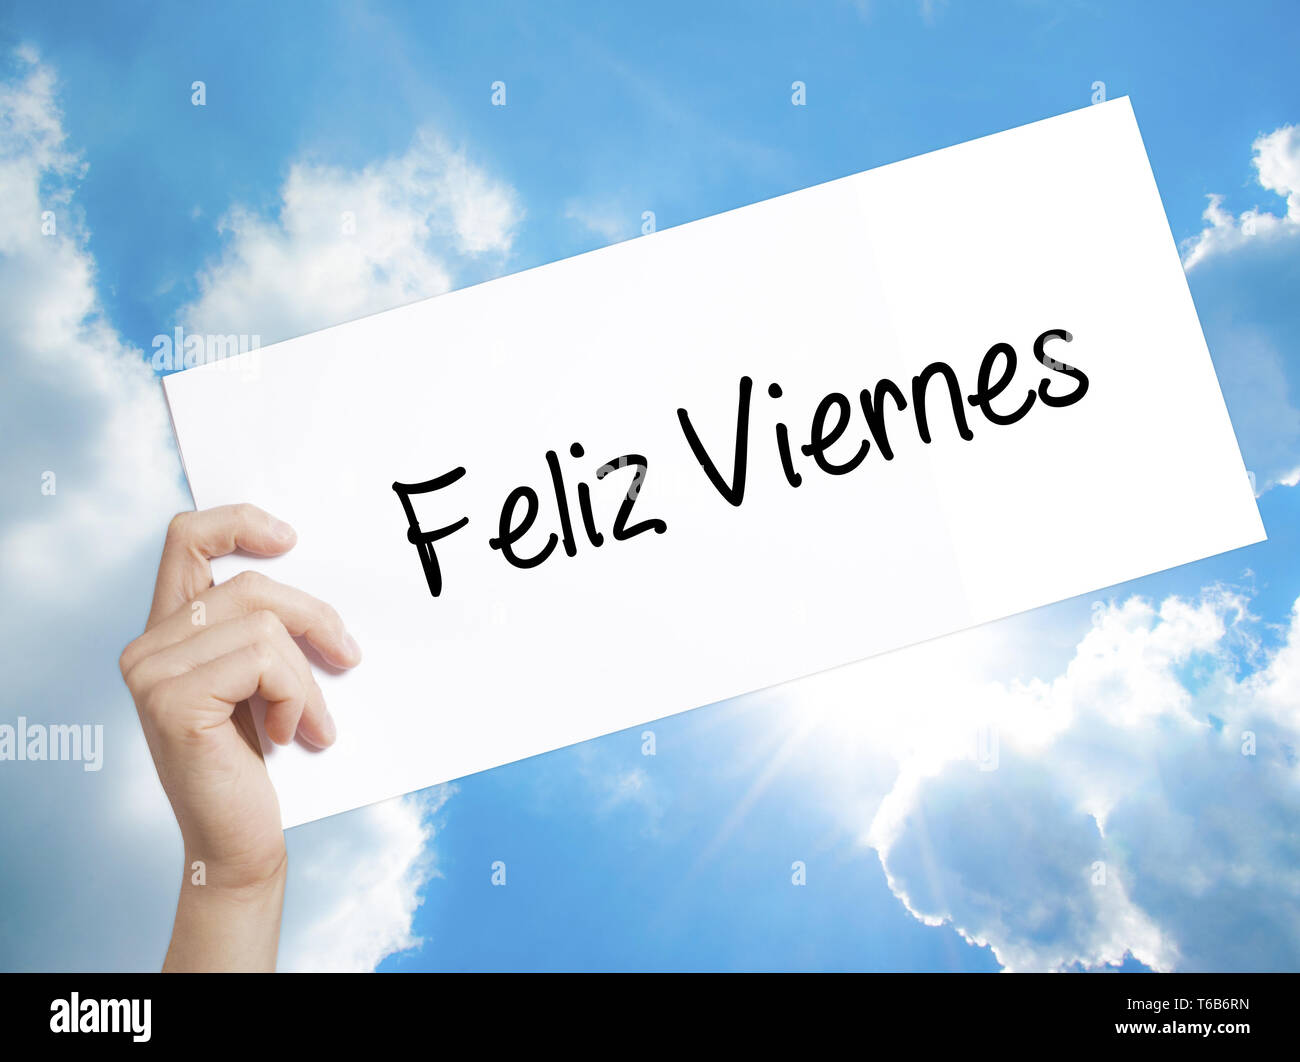 Feliz Viernes Happy Friday In Spanish Sign On White Paper Man Hand Holding Paper With Text Isolated On Sky Background Stock Photo Alamy